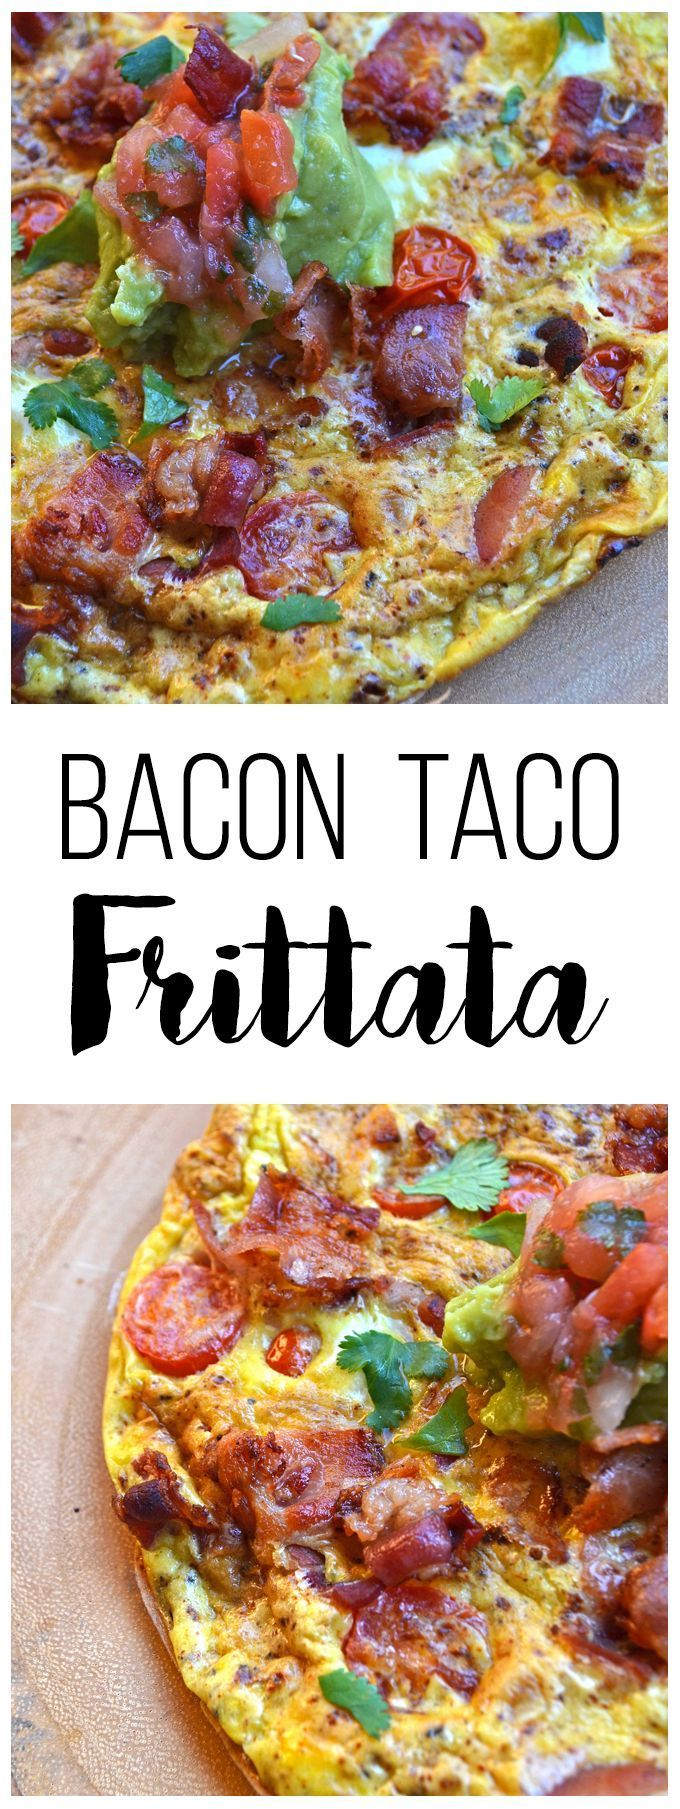 This Paleo Bacon Taco Frittata is super quick to whip together for a fiesta at breakfast! It is whole 30 approved and paleo and packed wit taco flavor! #paleo #grainfree #glutenfree